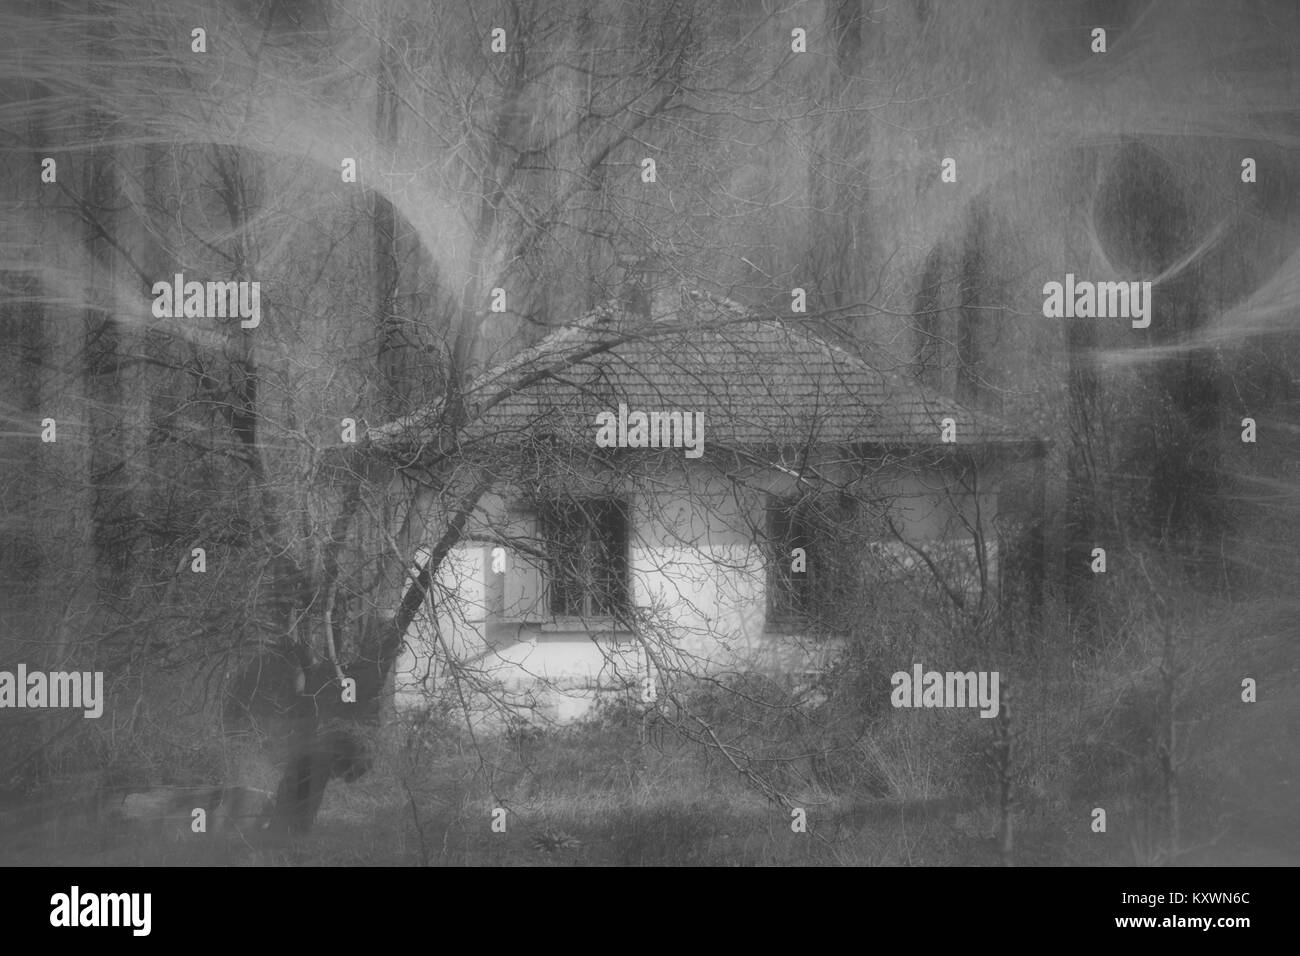 Ghostly demonic eyes above the abandoned house in the woods. Evil abstract background. - Stock Image